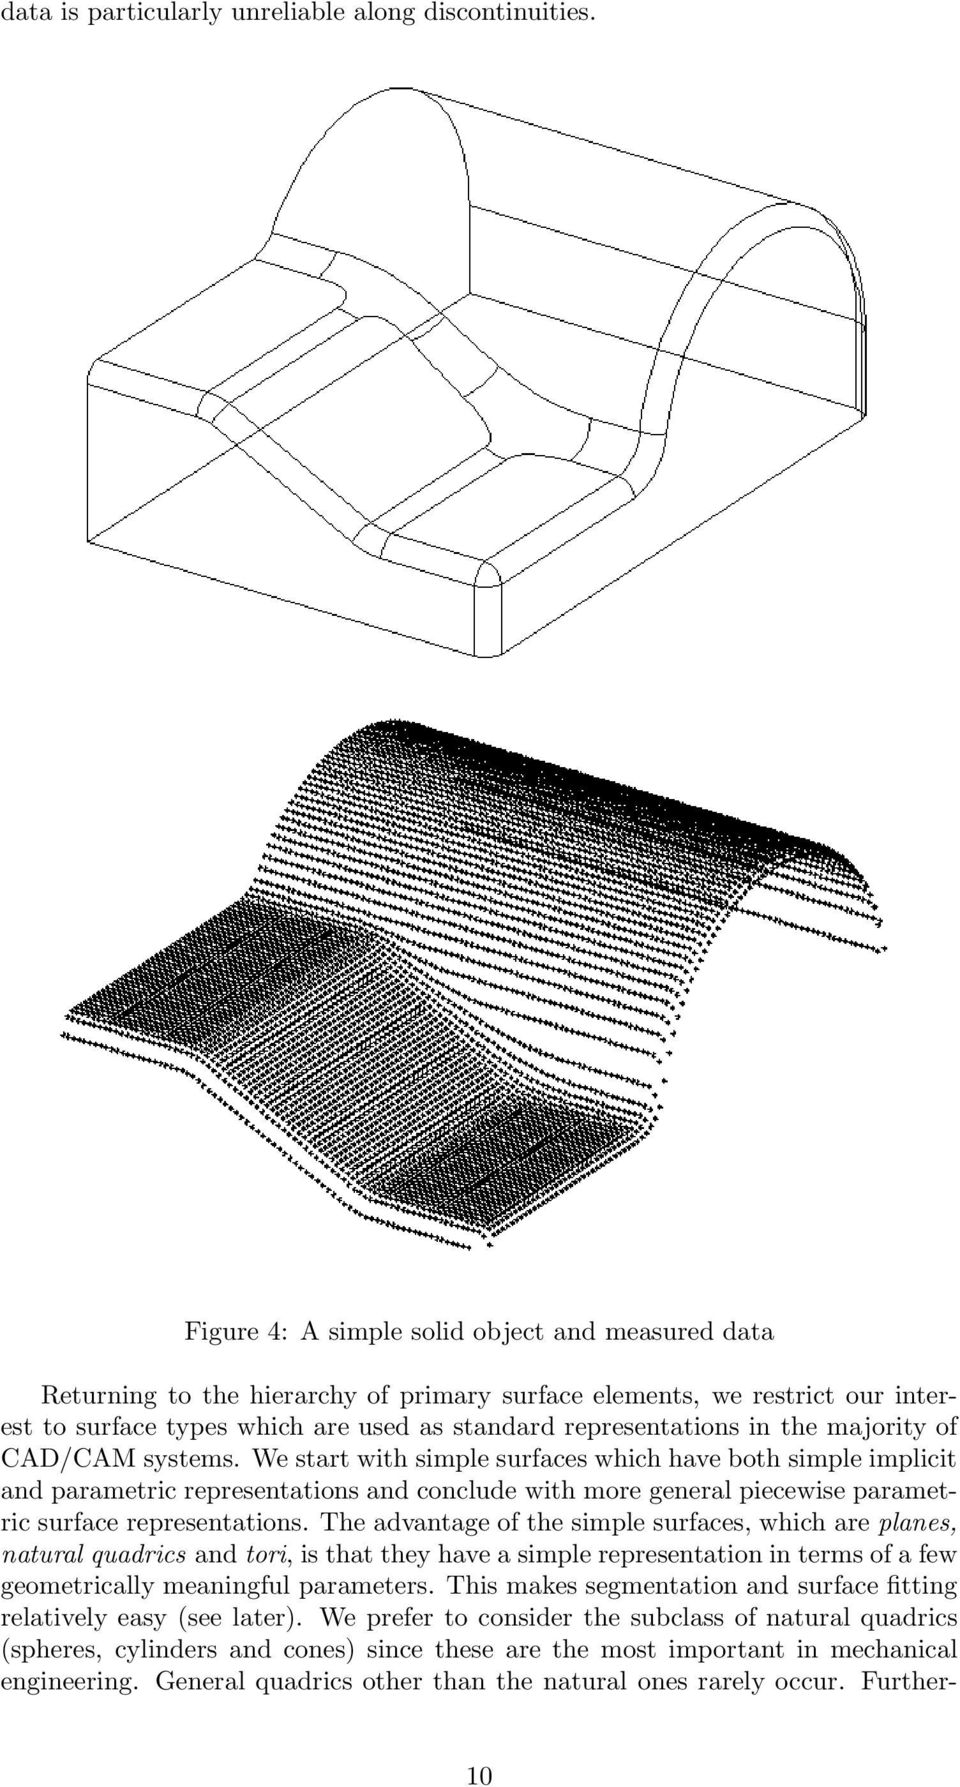 majority of CAD/CAM systems. We start with simple surfaces which have both simple implicit and parametric representations and conclude with more general piecewise parametric surface representations.